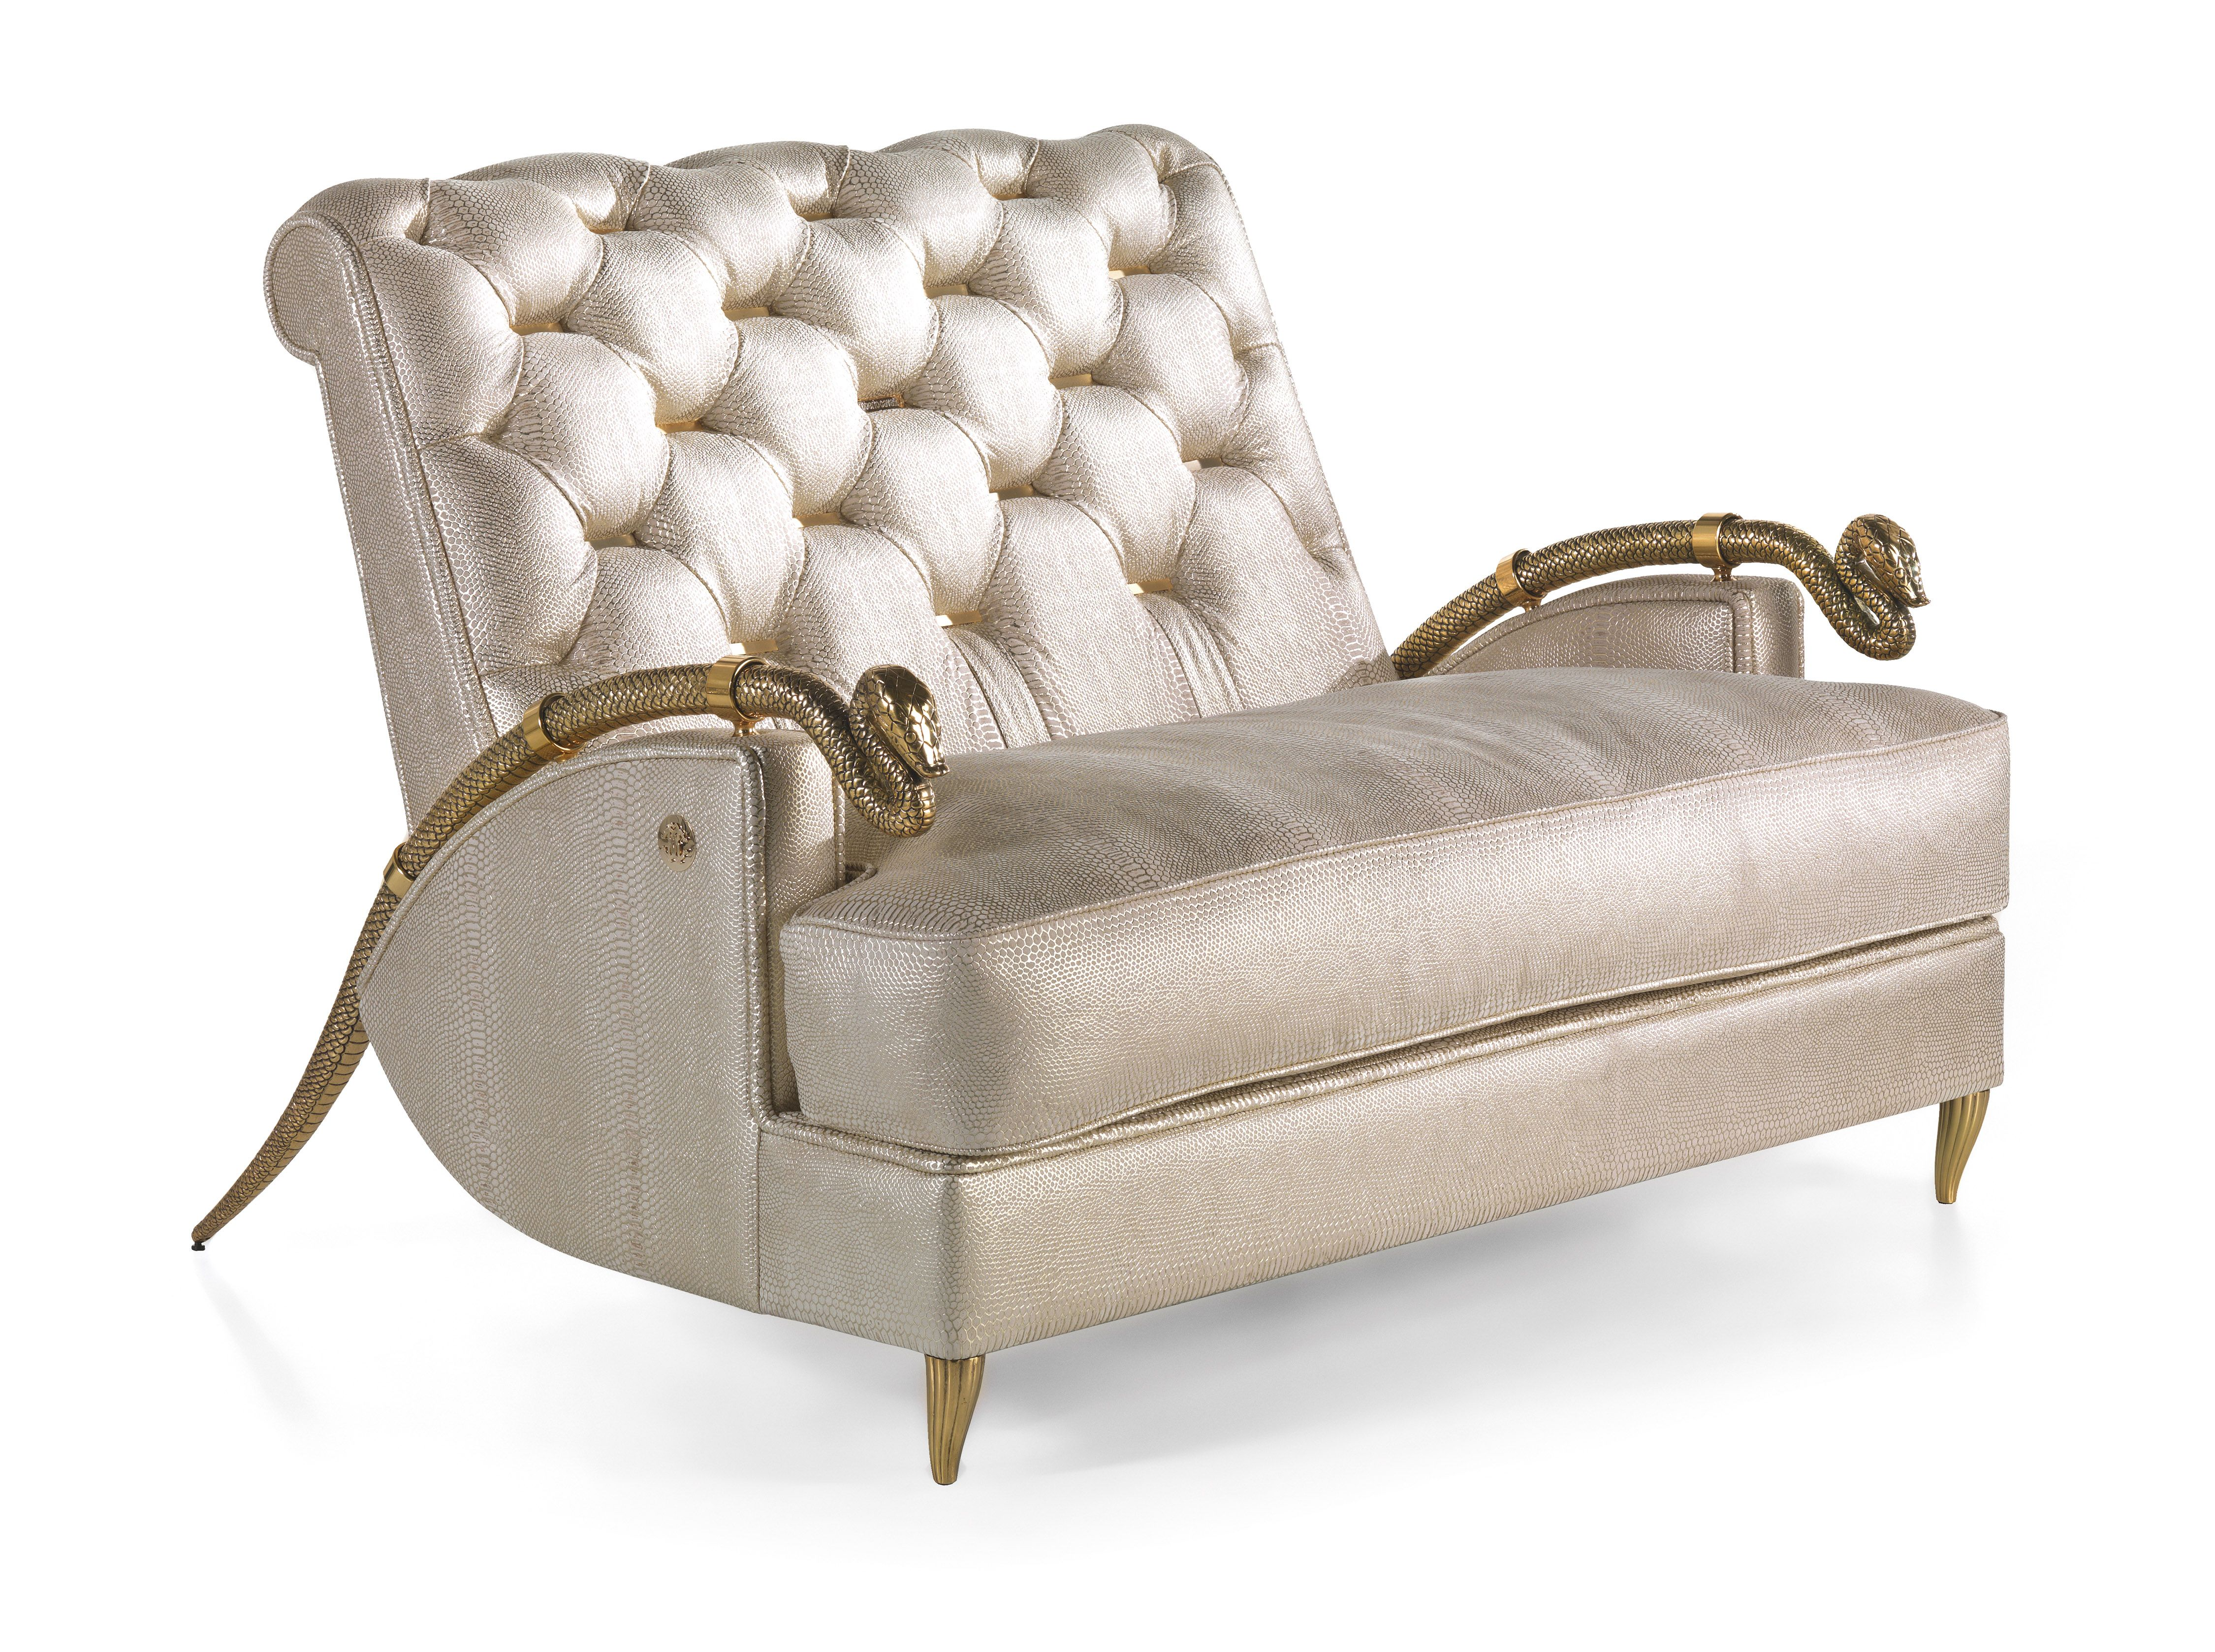 Feel like a King, try the Snake Armchair from Roberto Cavalli Home ...